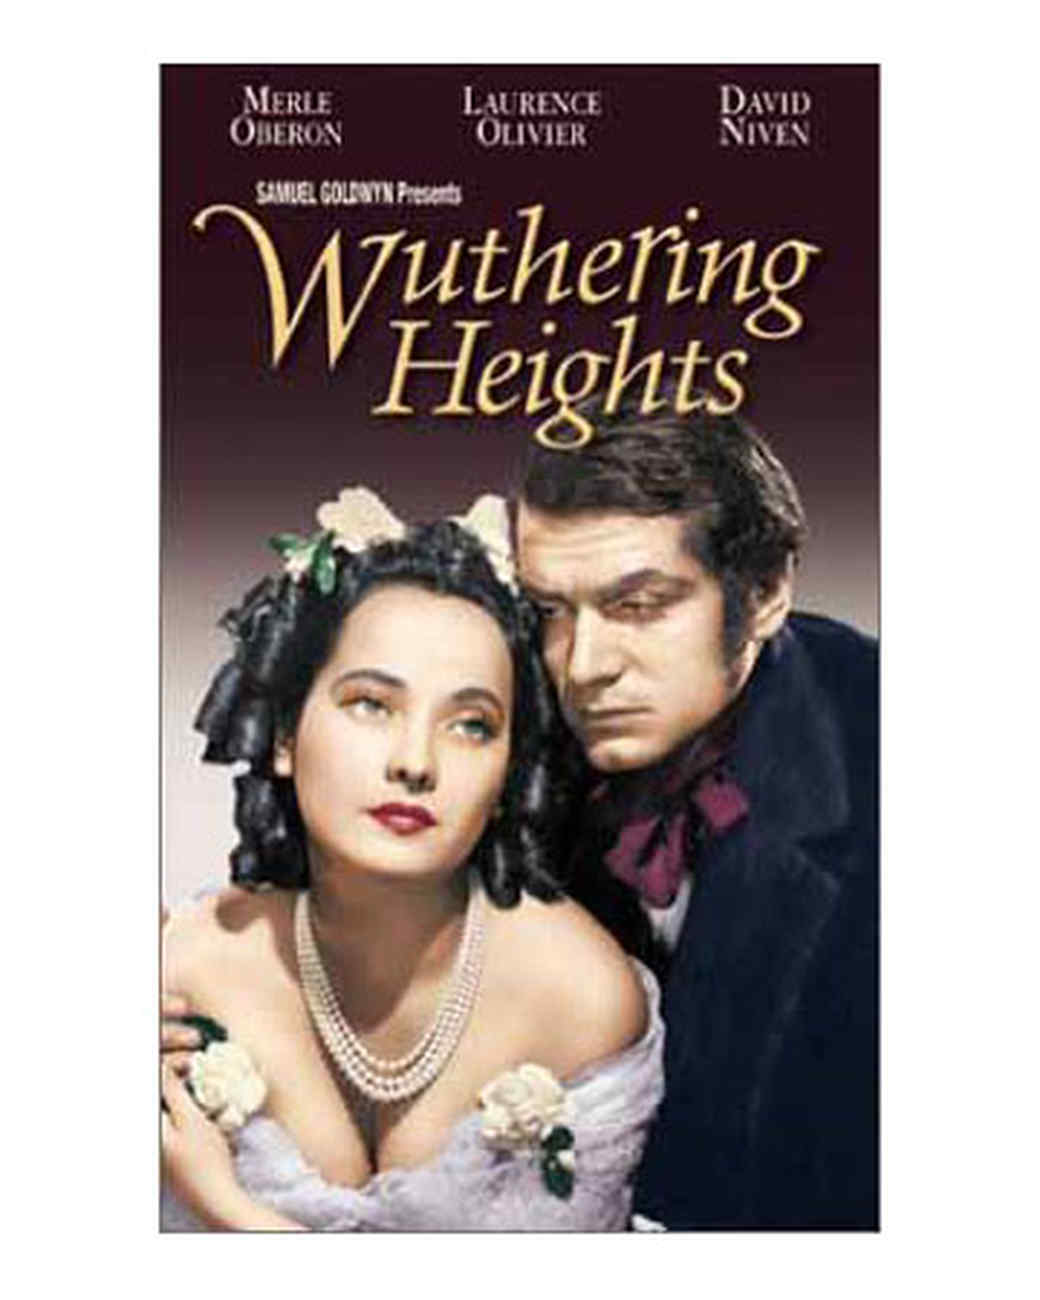 stock_movie_stills_wuthering_heights.jpg